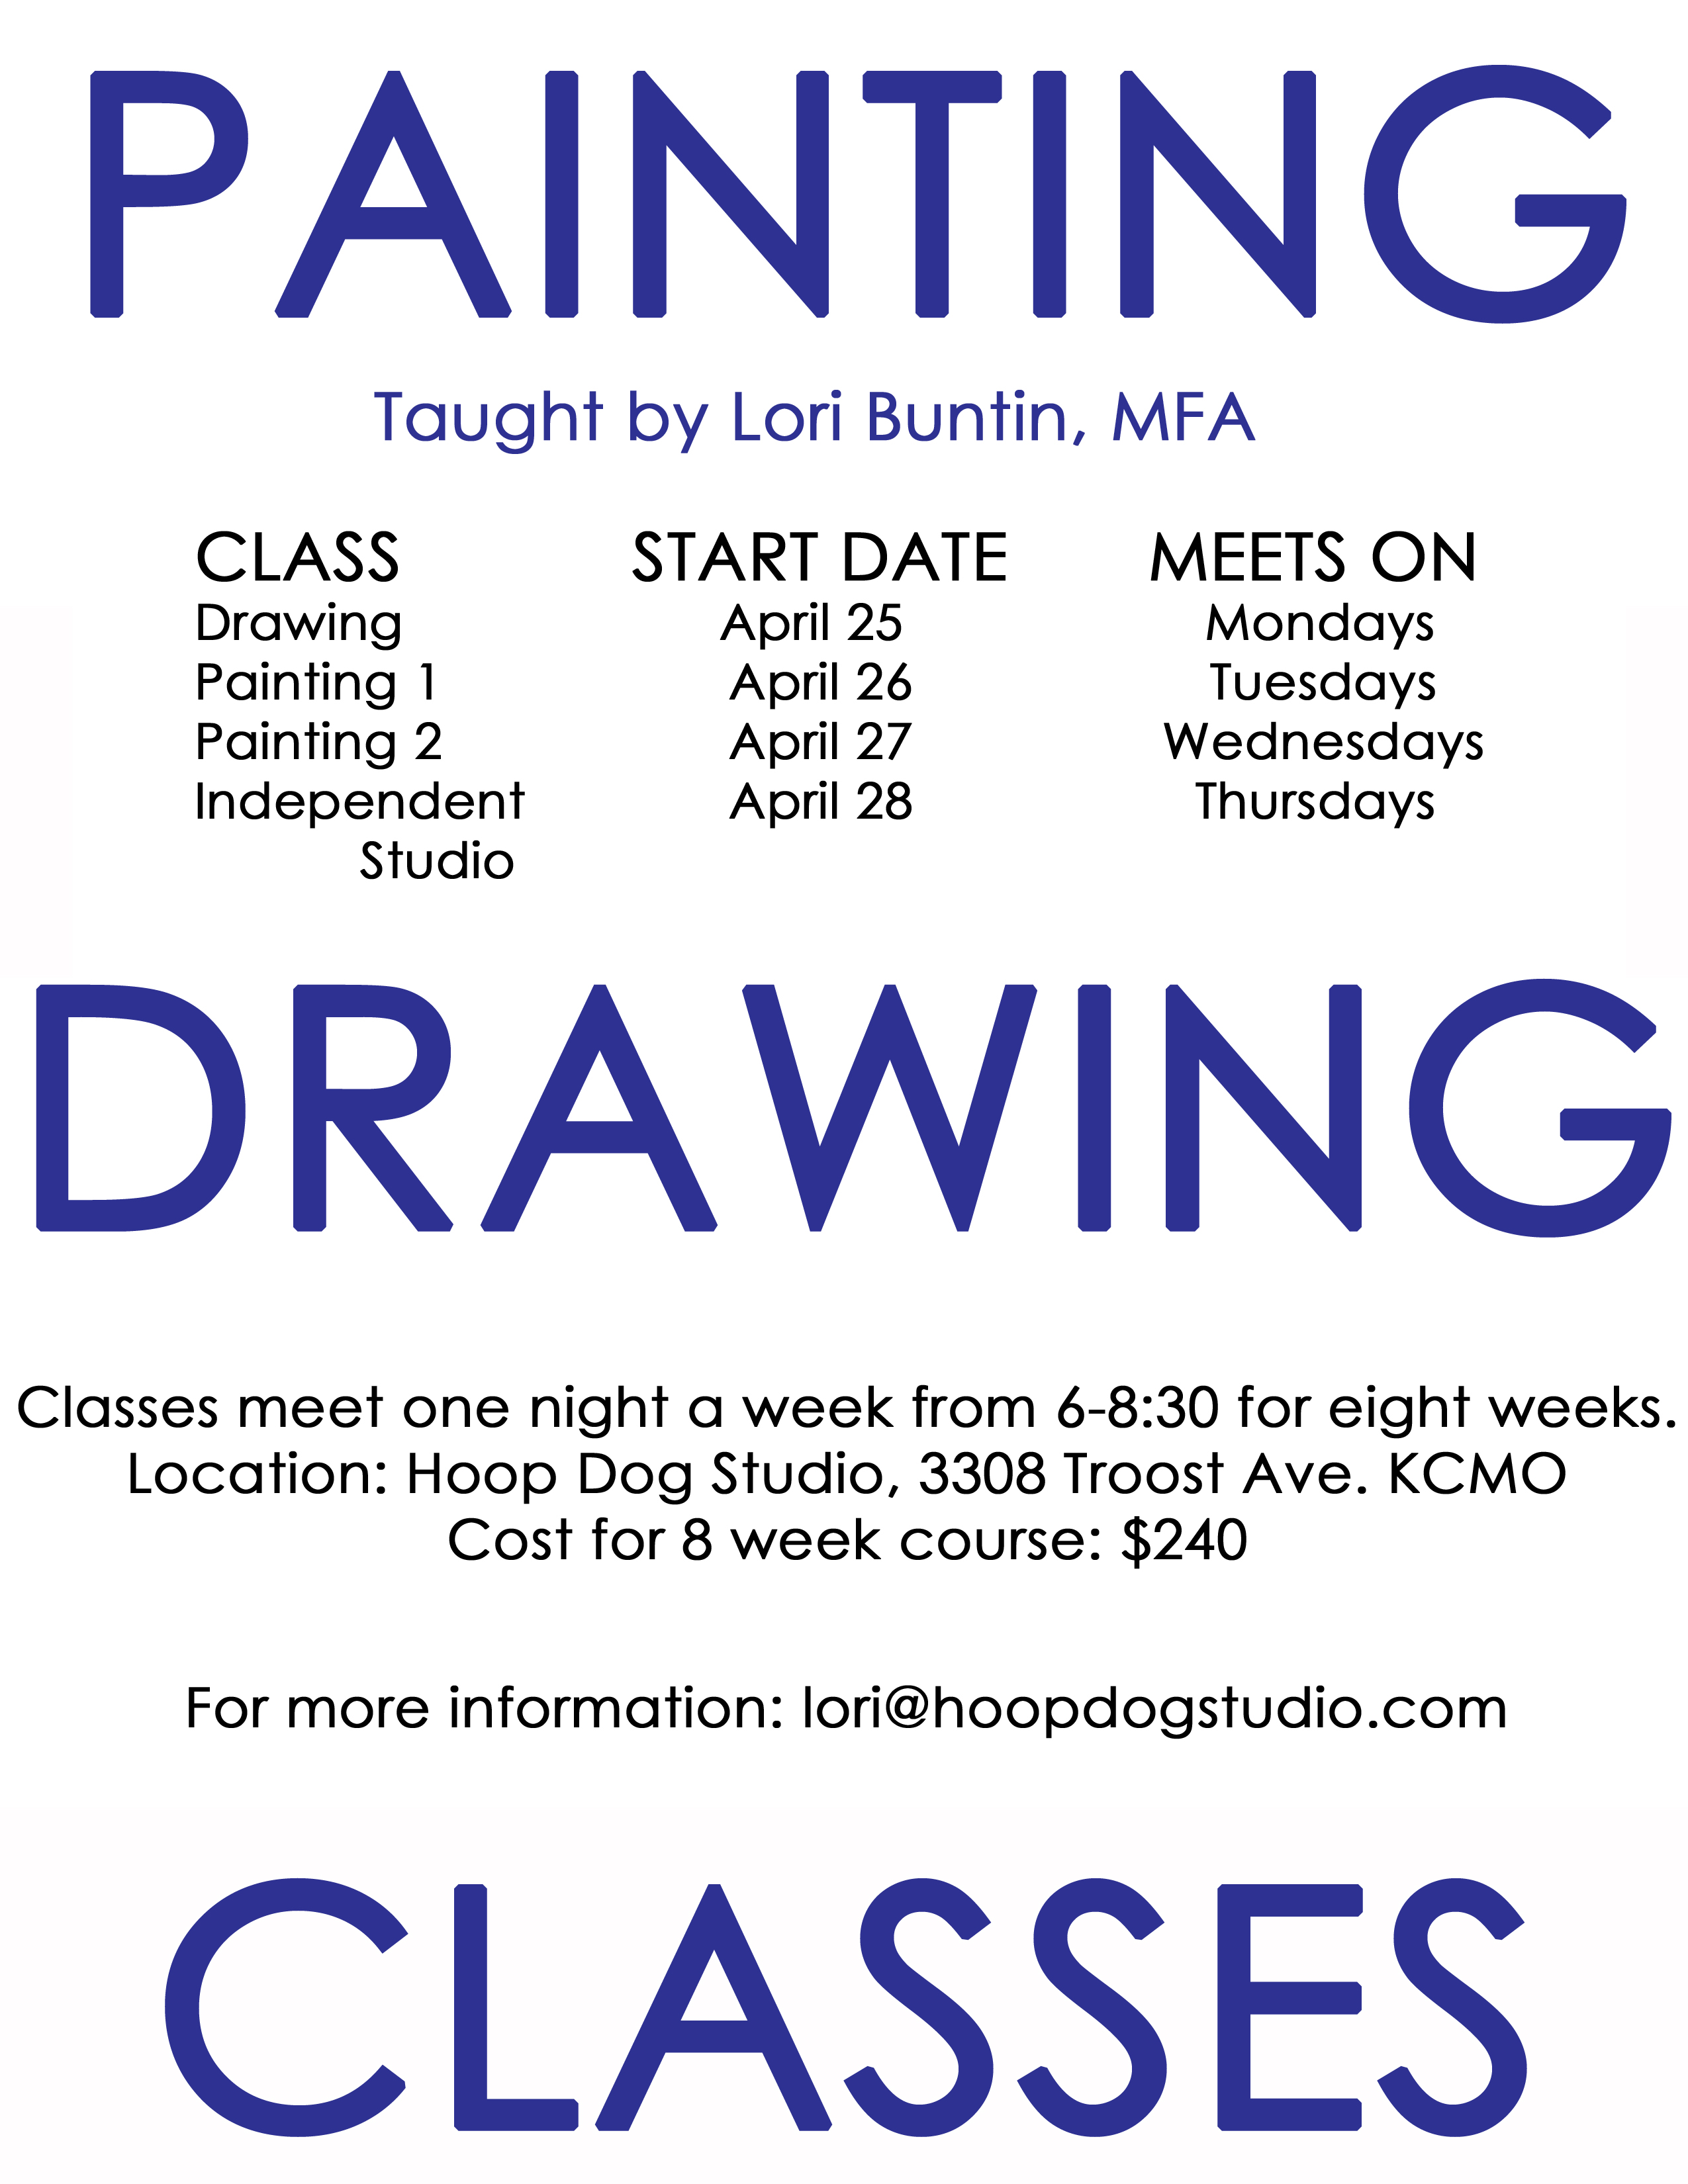 Upcoming Round of Art Classes at Hoop Dog Studio